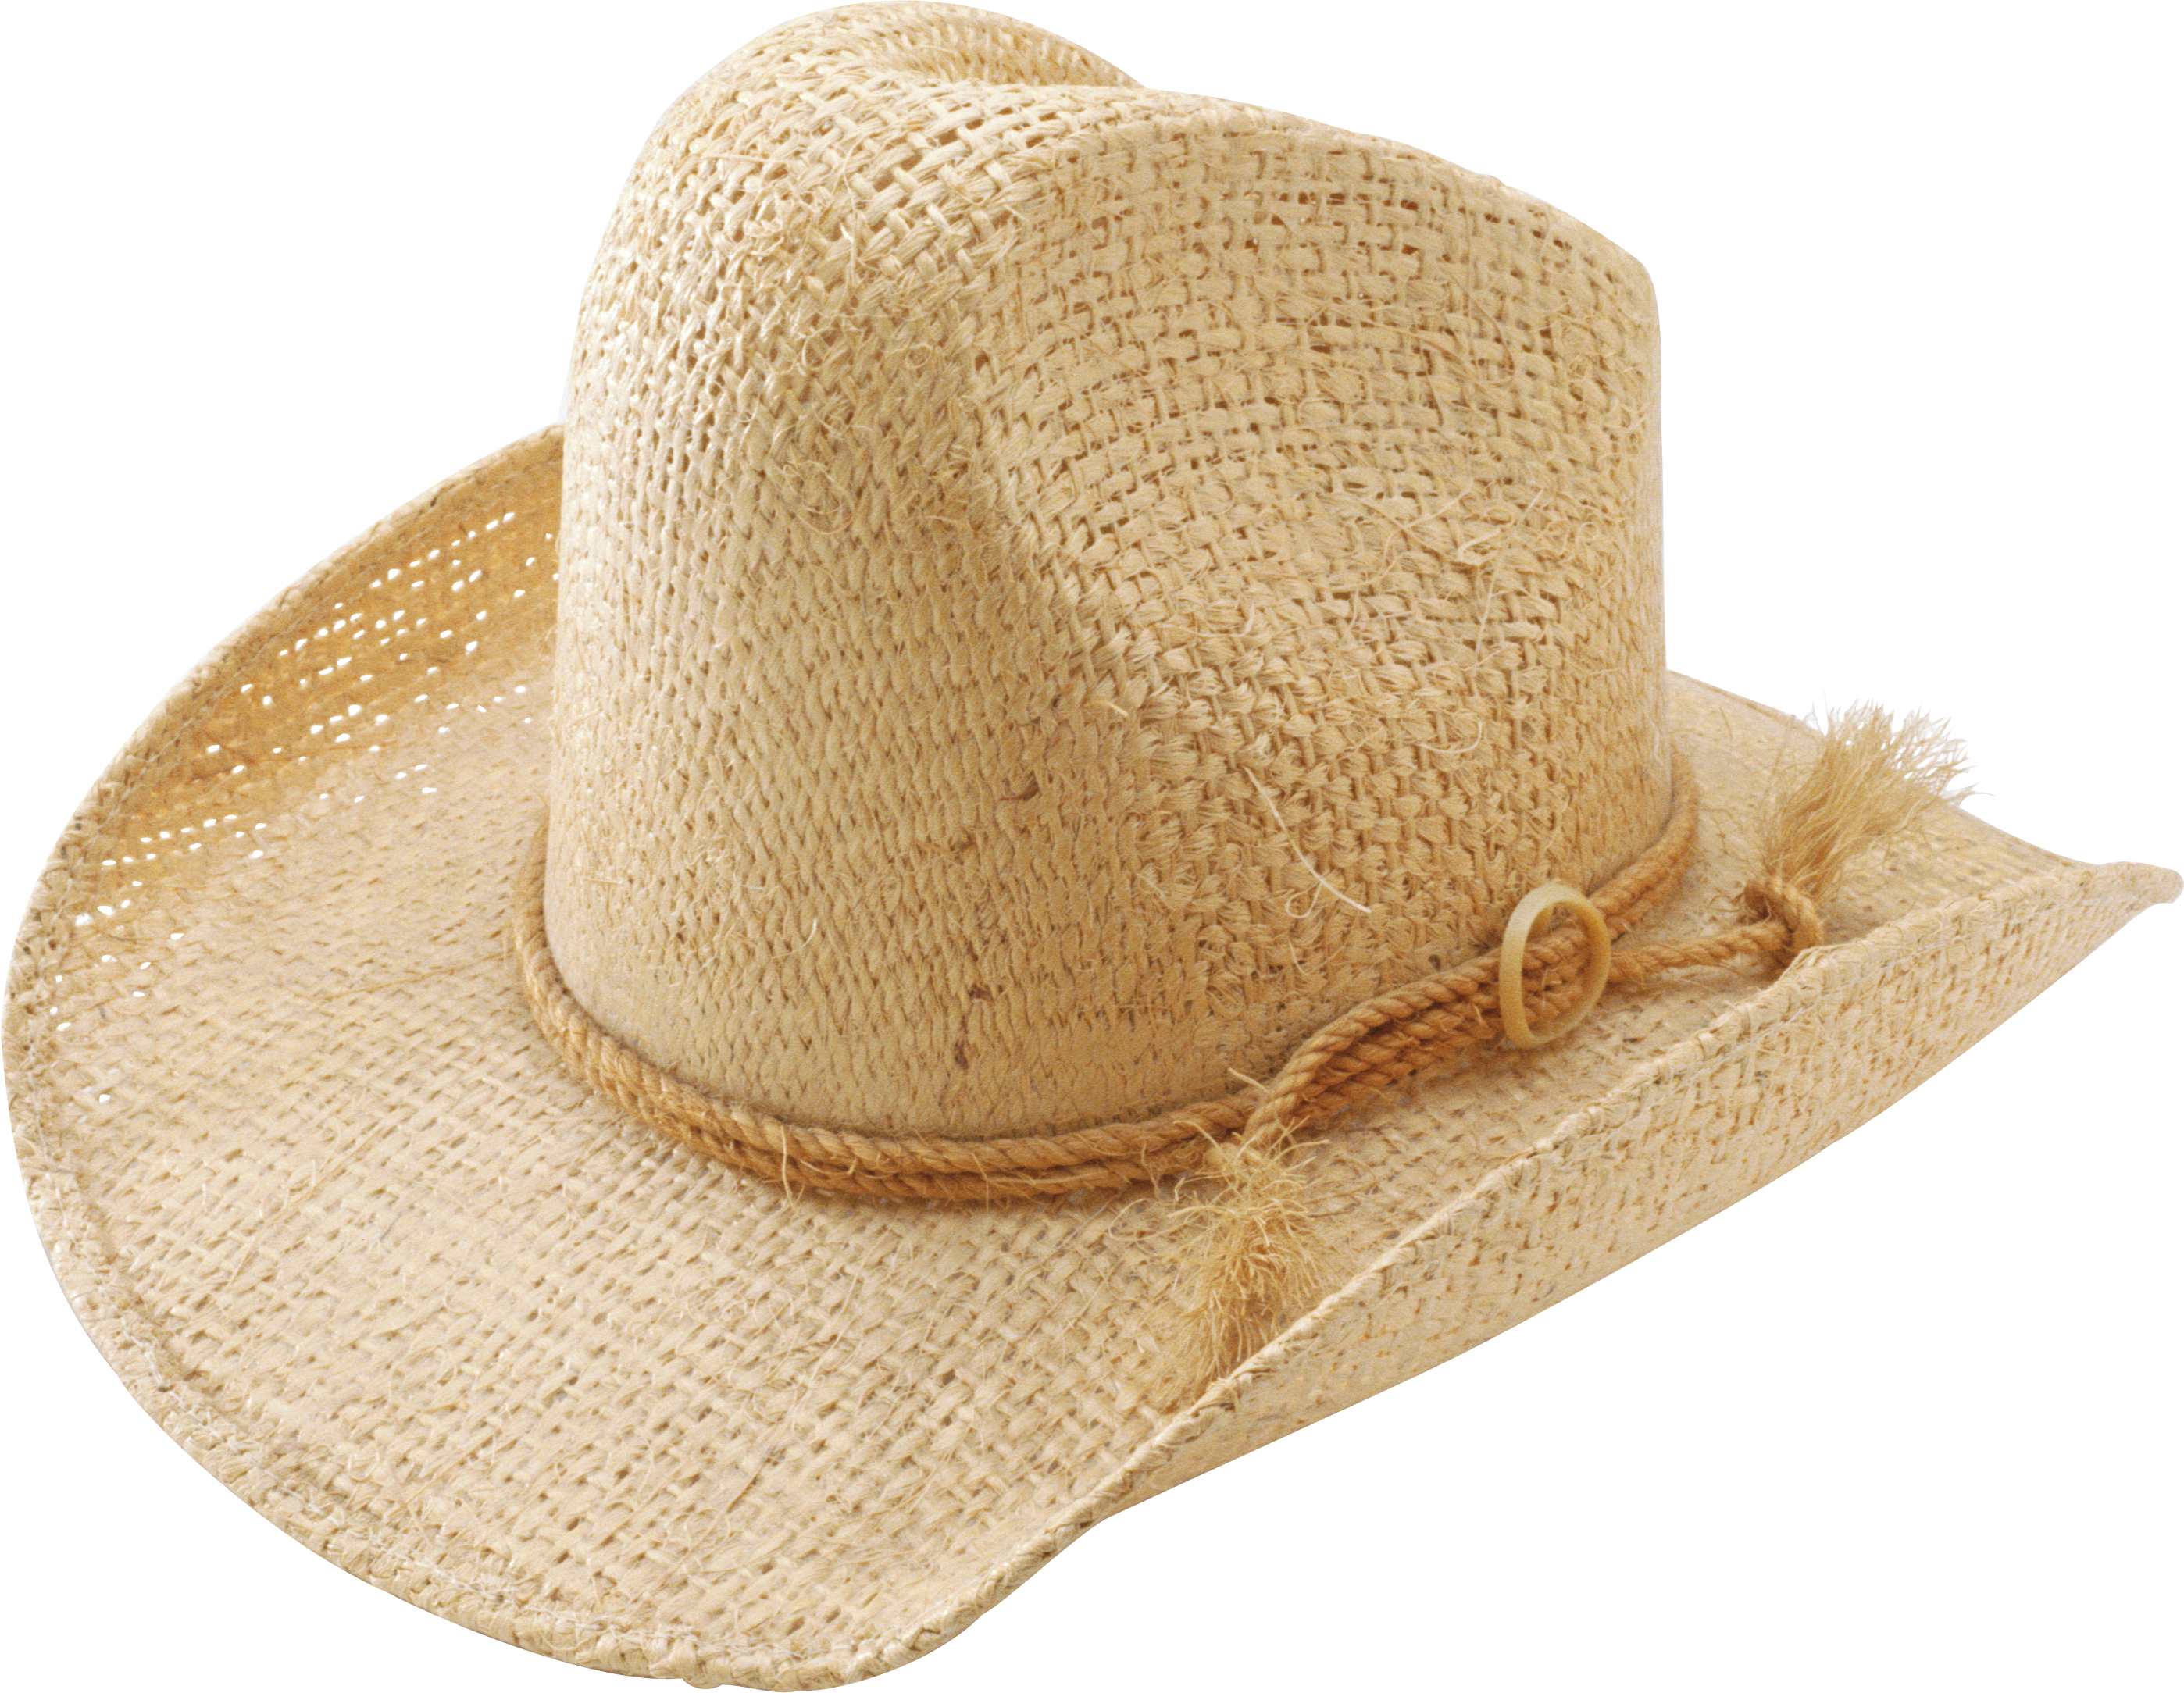 Sun hat clipart transparent svg royalty free stock Brown Cow Boy's Hat PNG Image - PurePNG | Free transparent CC0 PNG ... svg royalty free stock